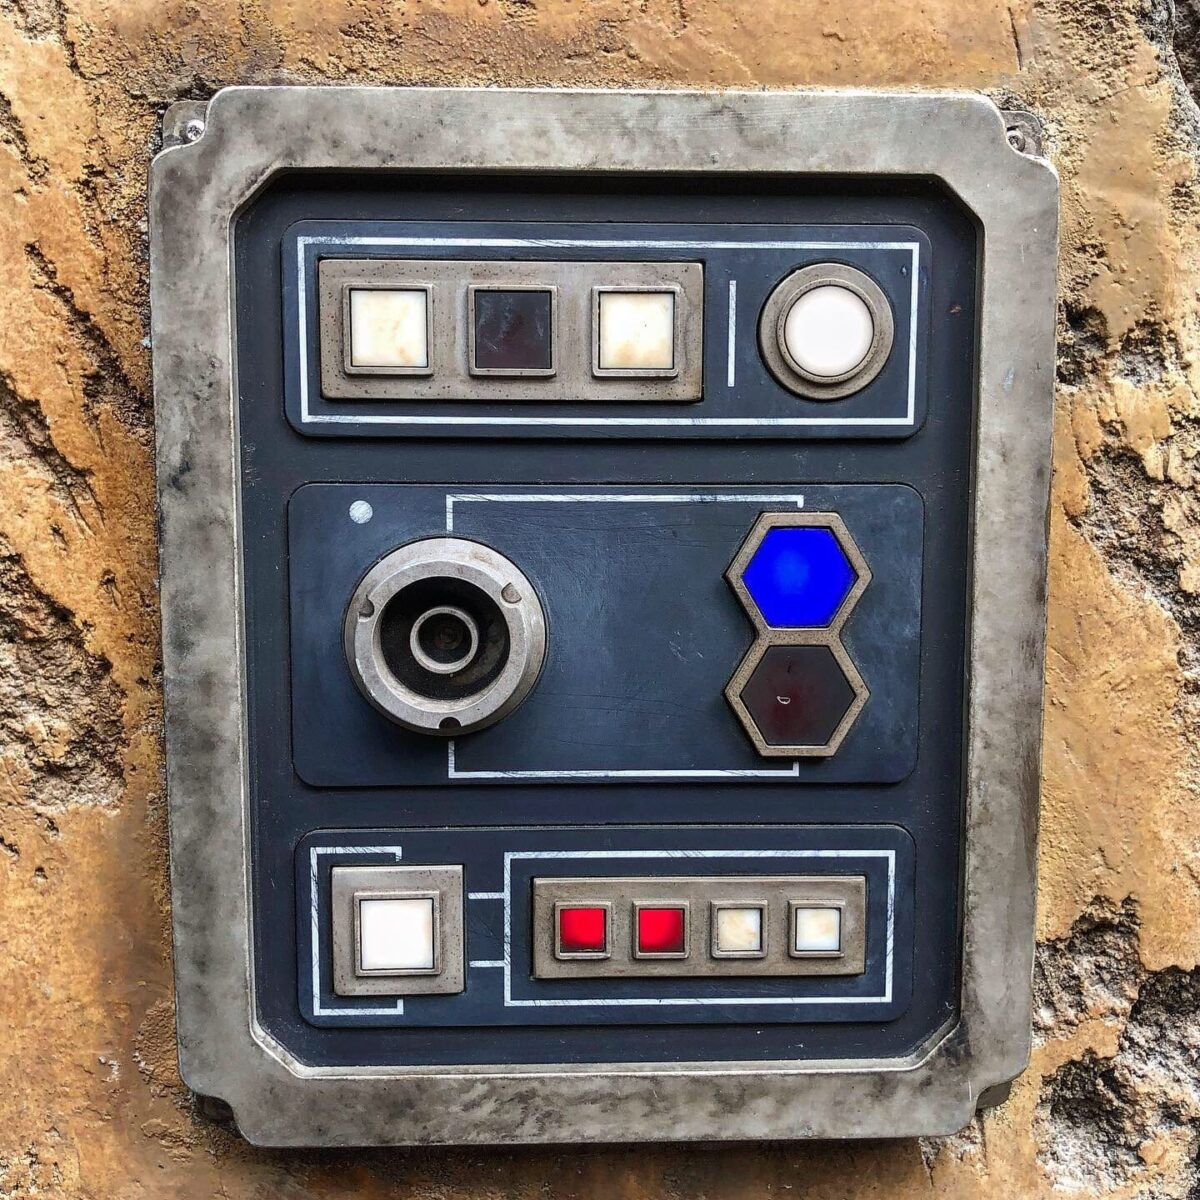 Black, White, Blue, and Red Star Wars Themed Control Panel